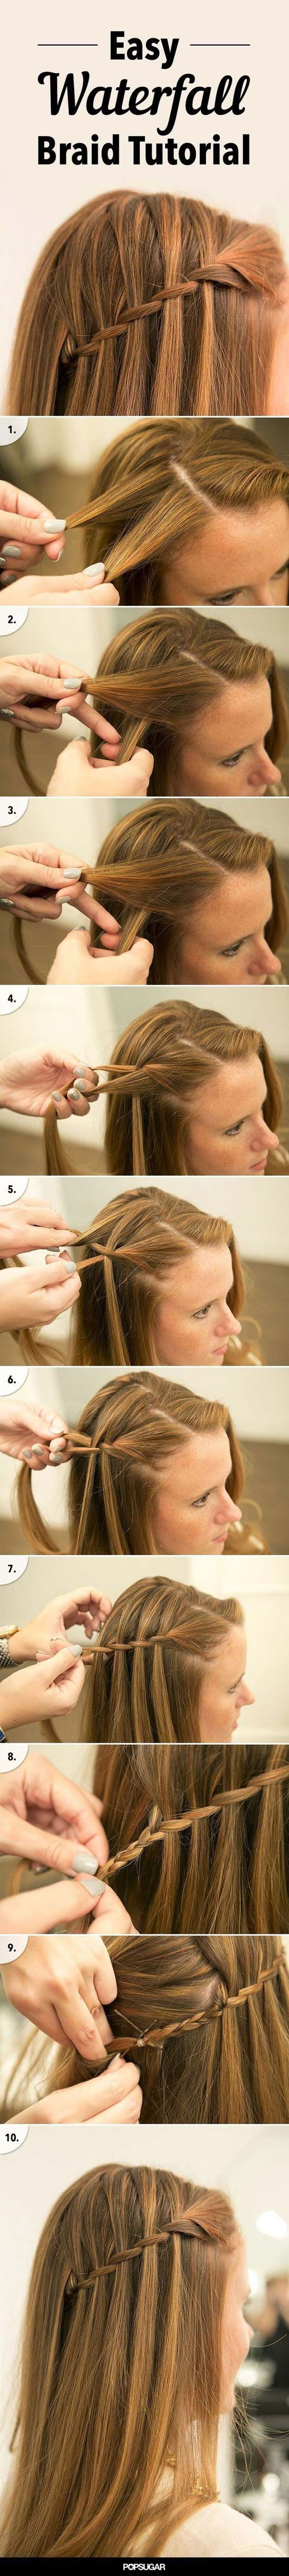 Best Hairstyles for Long Hair - Waterfall Braid Tutorial- Step by Step Tutorials for Easy Curls, Updo, Half Up, Braids and Lazy Girl Looks. Prom Ideas, Special Occasion Hair and Braiding Instructions for Teens, Teenagers and Adults, Women and Girls http://diyprojectsforteens.com/best-hairstyles-long-hair